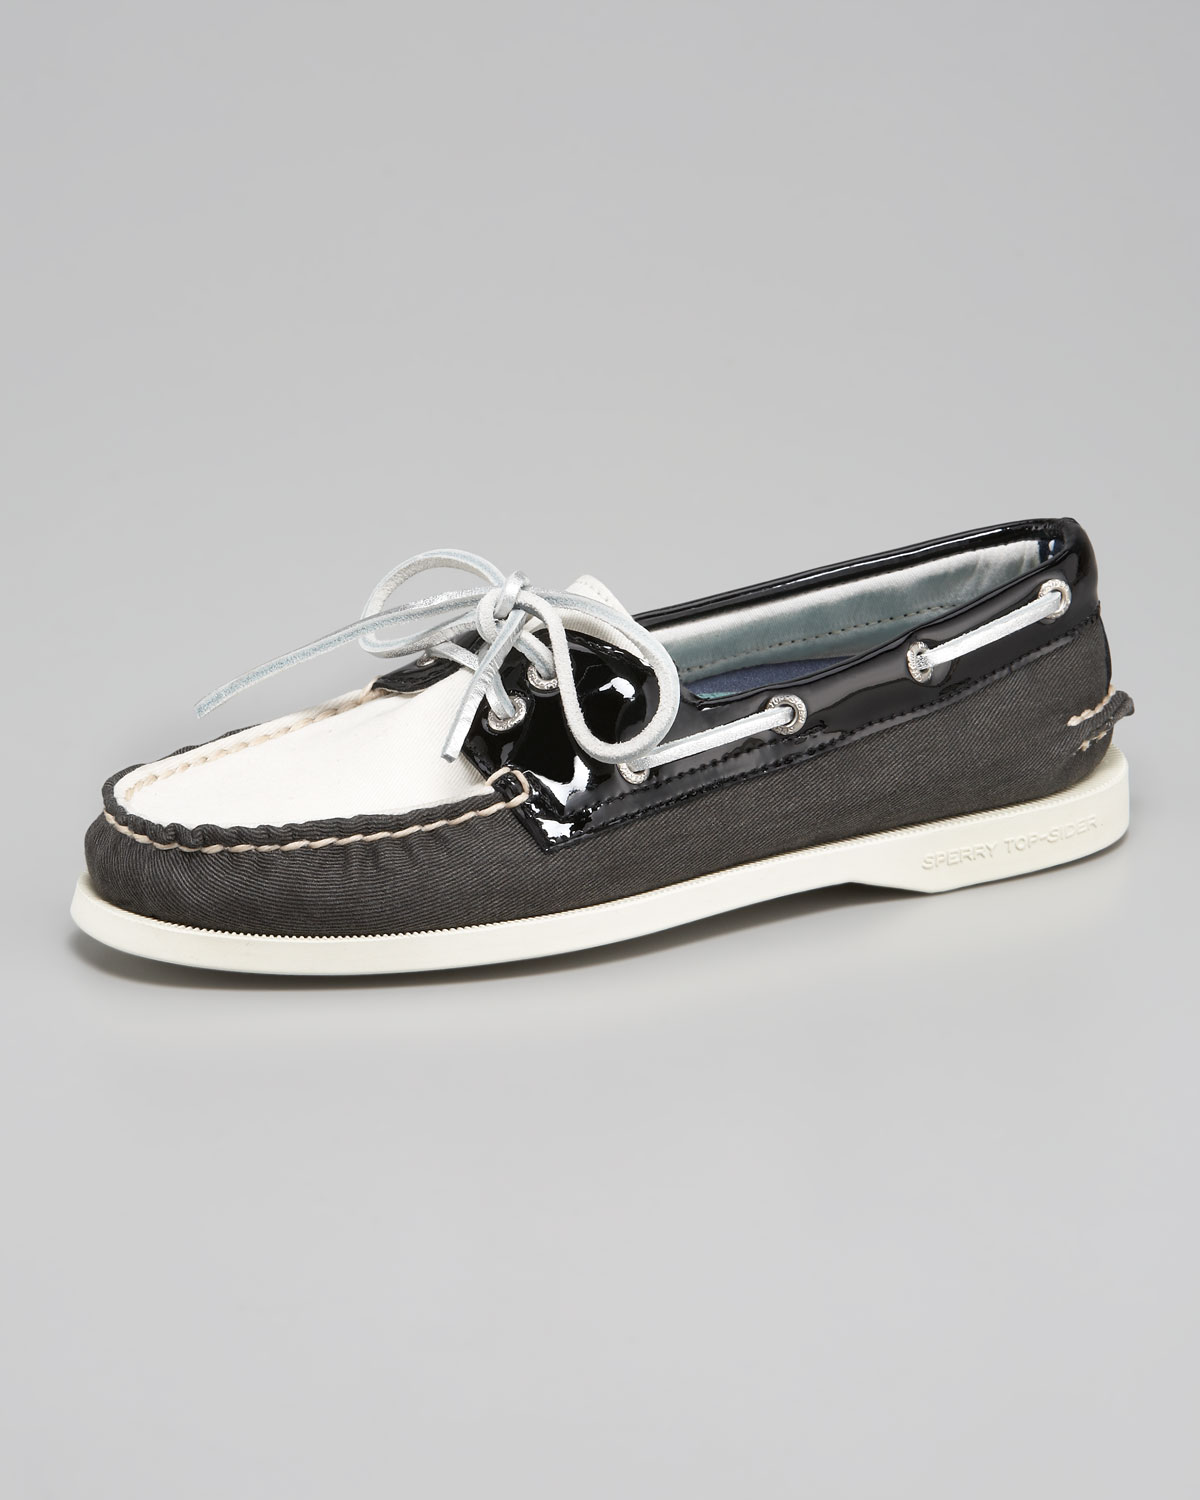 sperry top sider authentic original two tone boat shoe in